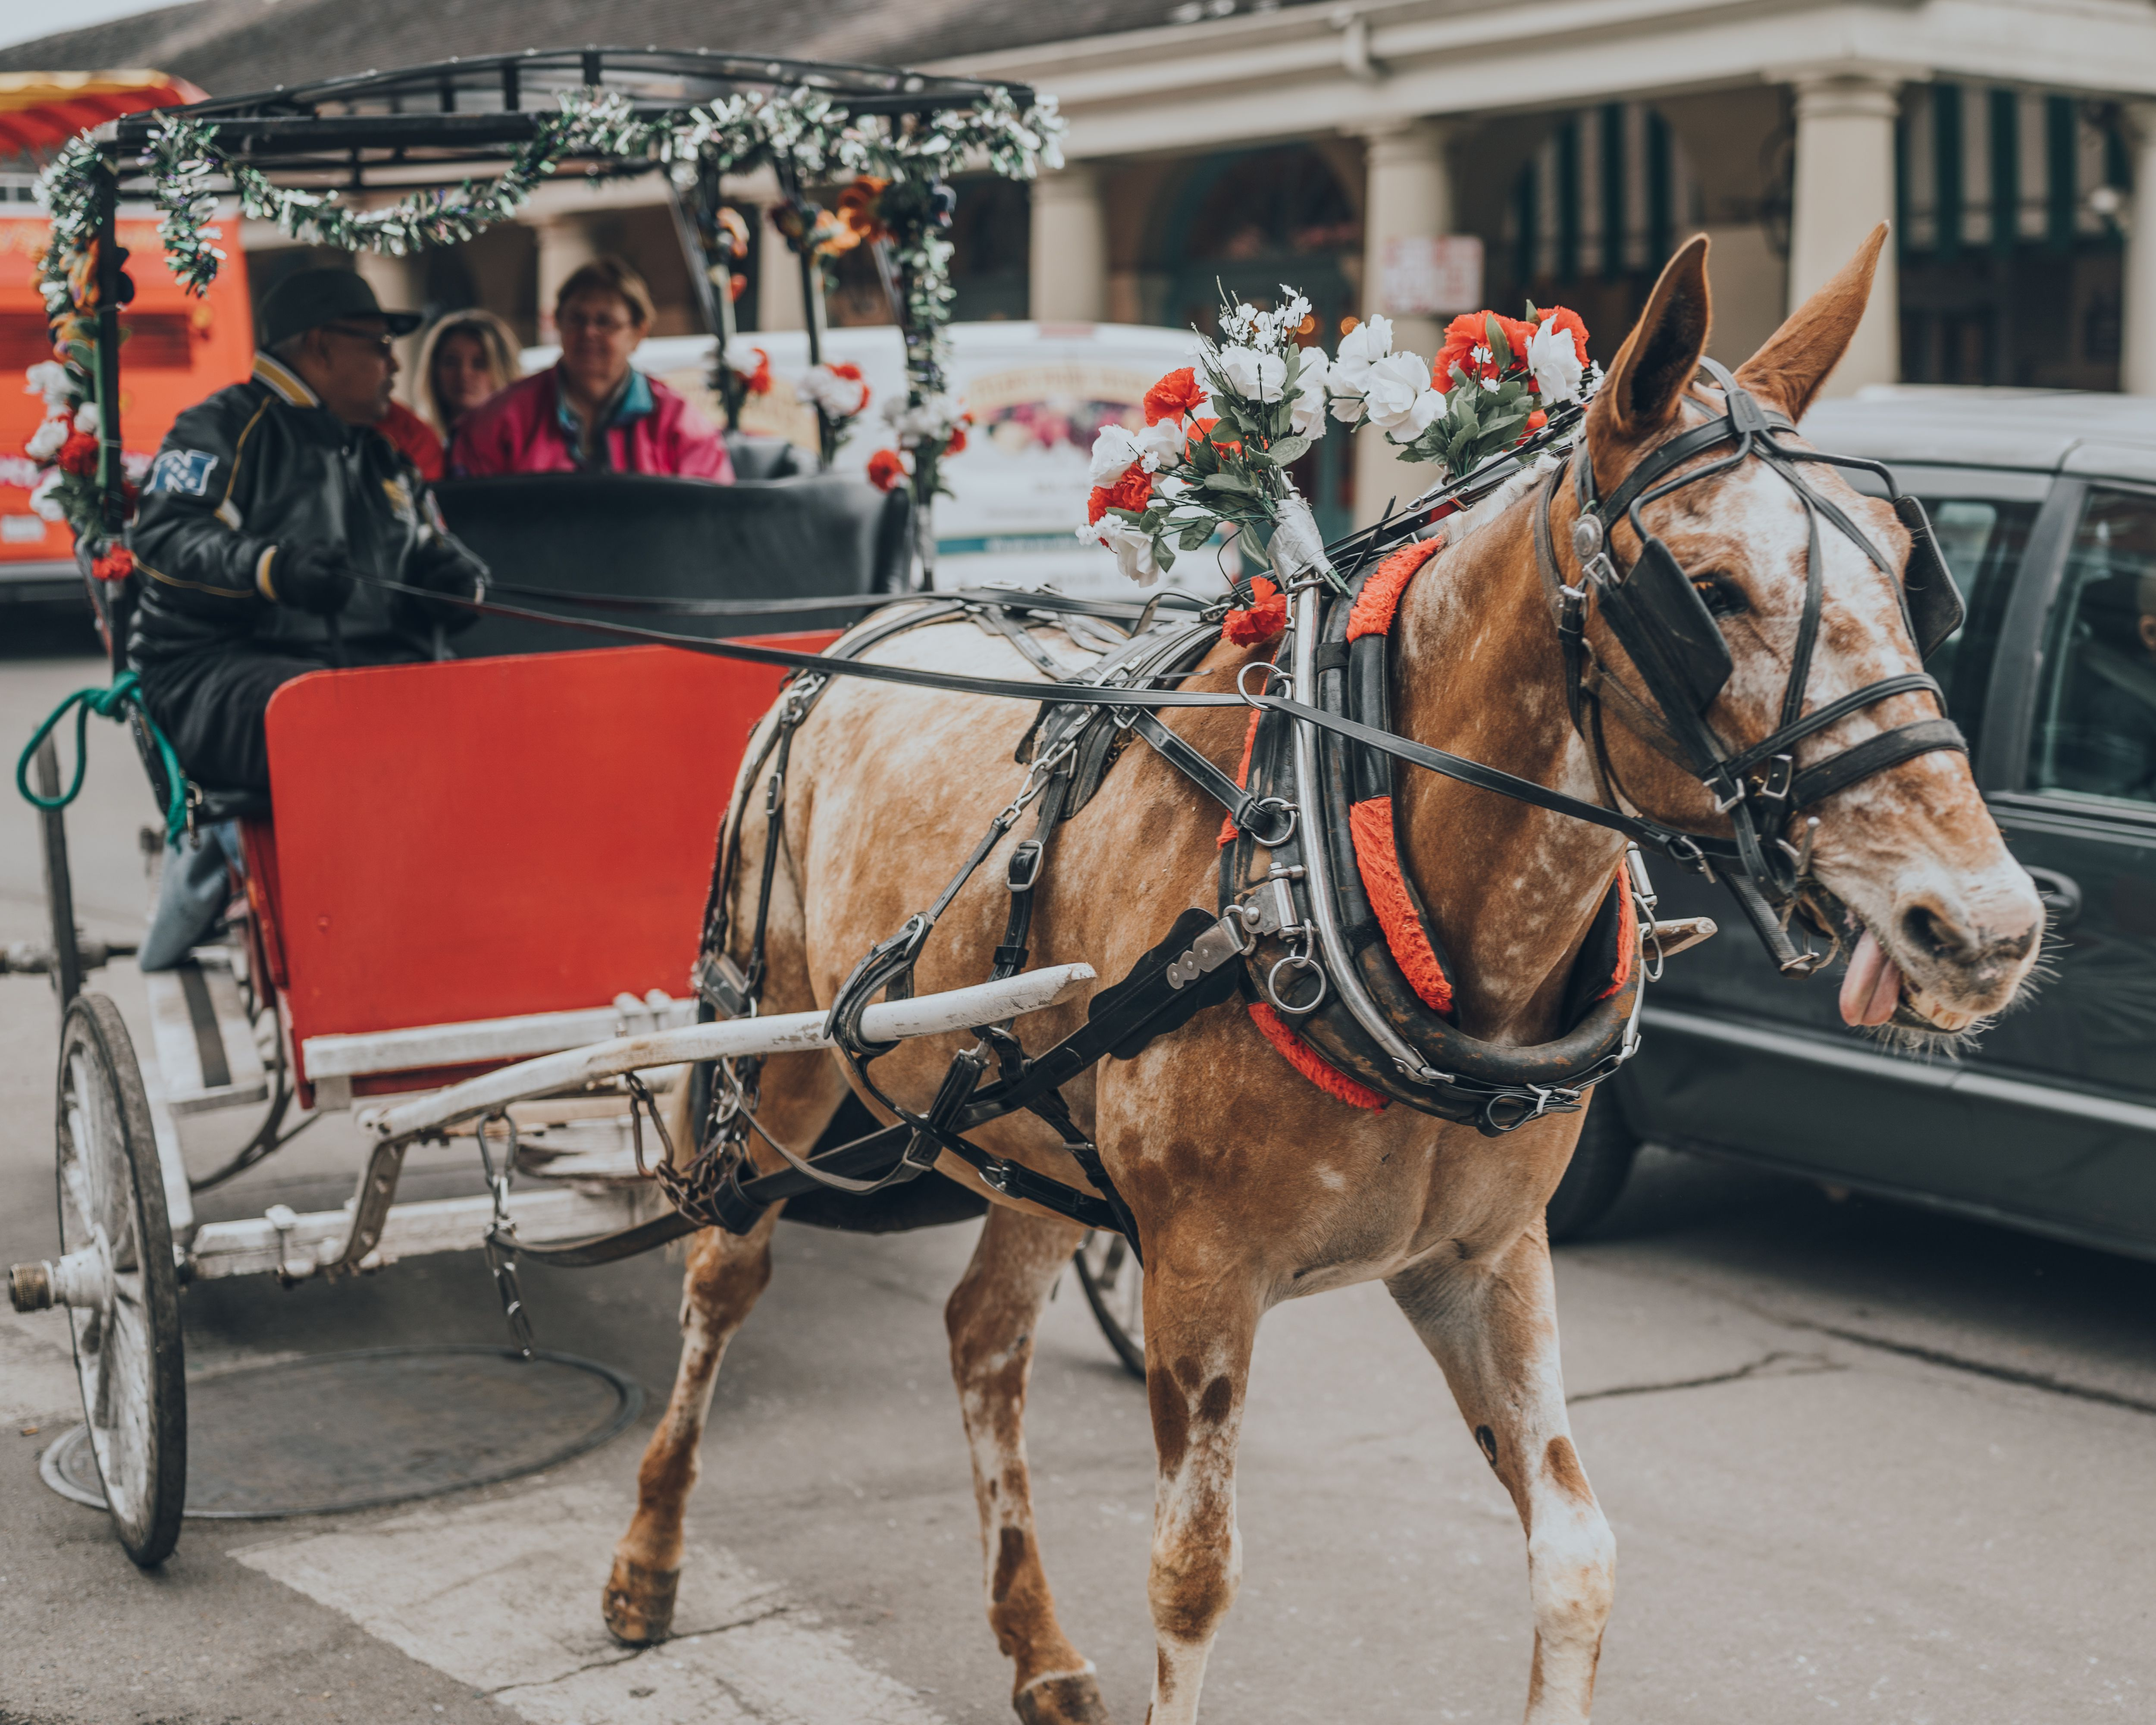 Horse and carriage in New Orleans